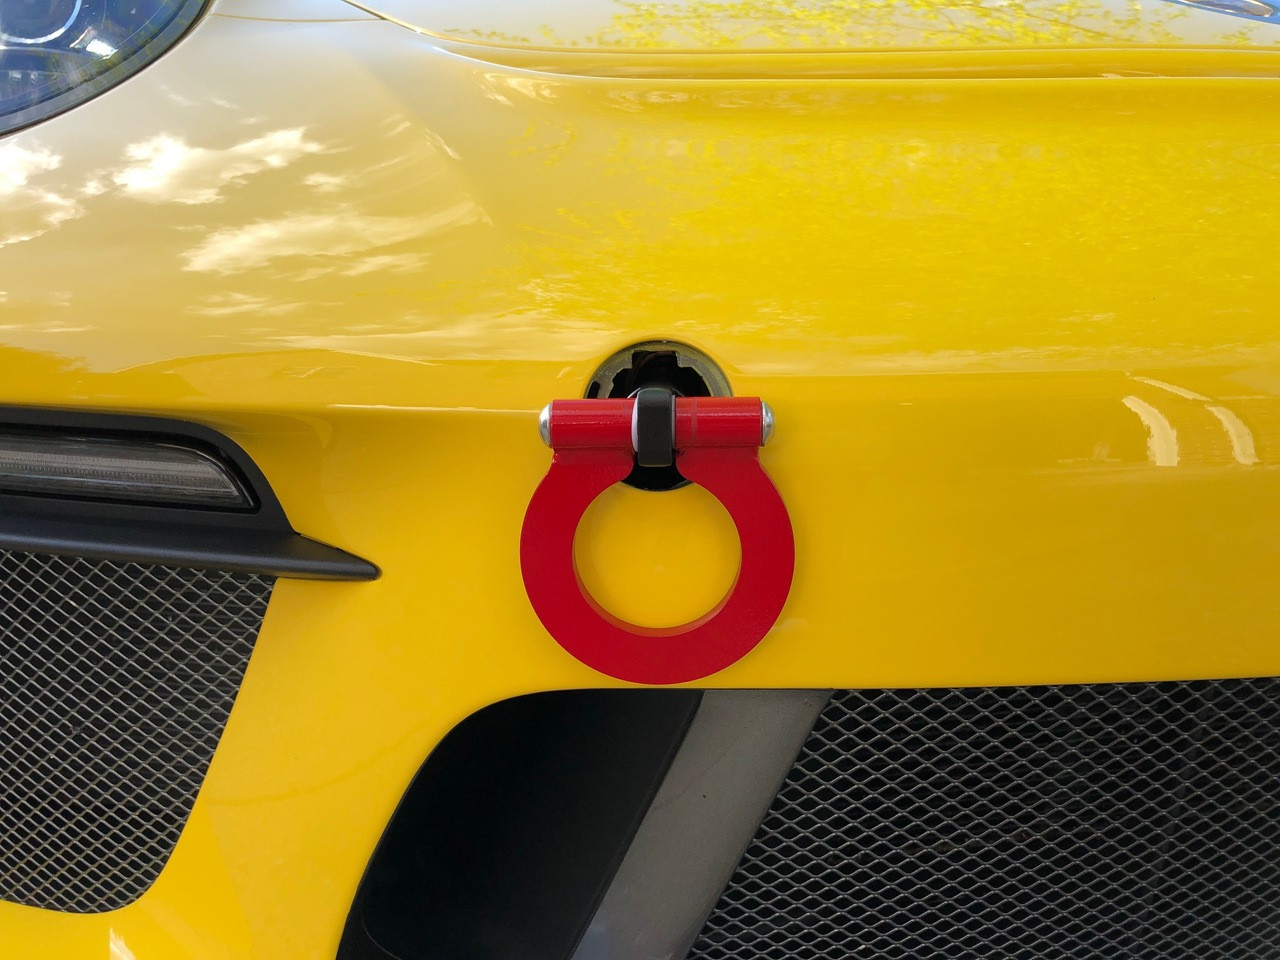 "RSS Tow Hooks for Porsche Automobiles. Designed, engineered and manufactured in USA. High quality and functionality for your Porsche. RSS Folding Tow Hooks for Porsche Models are engineered with a 90 Degree Angle Stop Design and with Adjustable Bumper Offset to prevent bumper cover contact. Made in USA at RSS. Easy to Install, Screws Into Factory Location; Black 1018 Steel Shaft w/Stainless Steel Hoop; Angle of Hoop is Adjustable; 2"" Opening; Utilizes Special Factory Porsche Thread Style; 991.2 GT3/RS and Turbo: BLACK (#941/30), and RED (#941/34)."